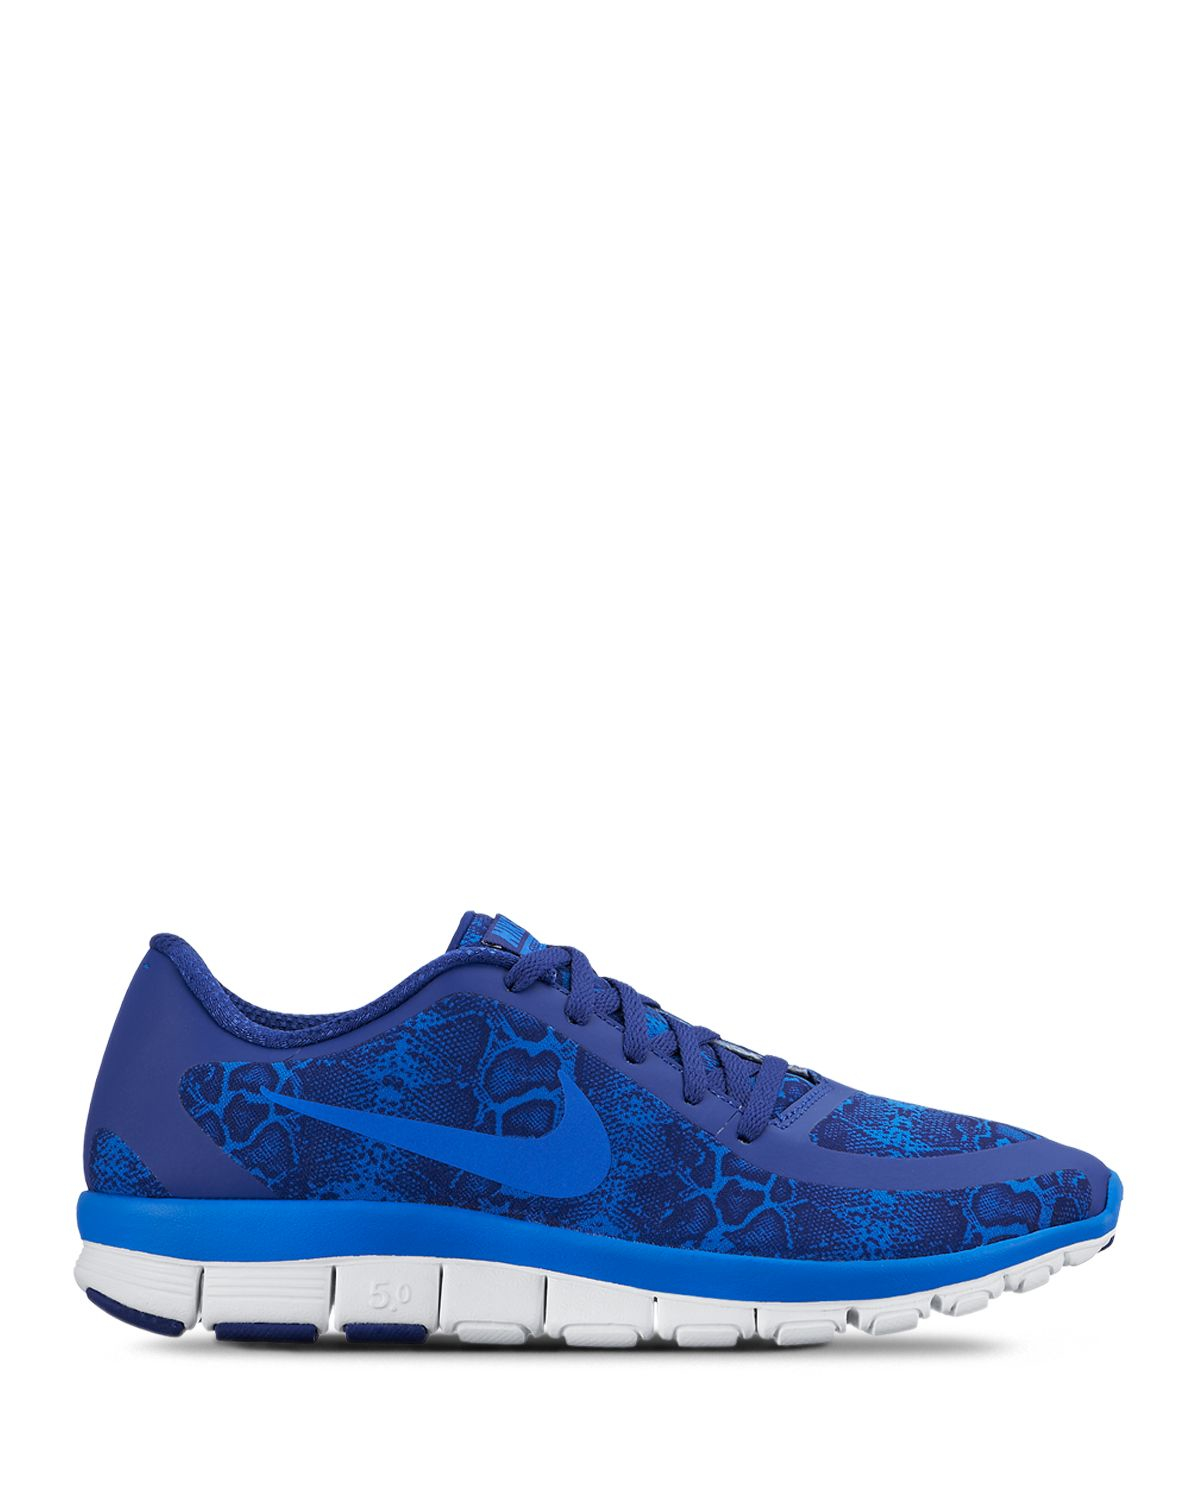 Luxury Nike Womens Shoes Running Flex Experience Laceup Mesh Man Made Size